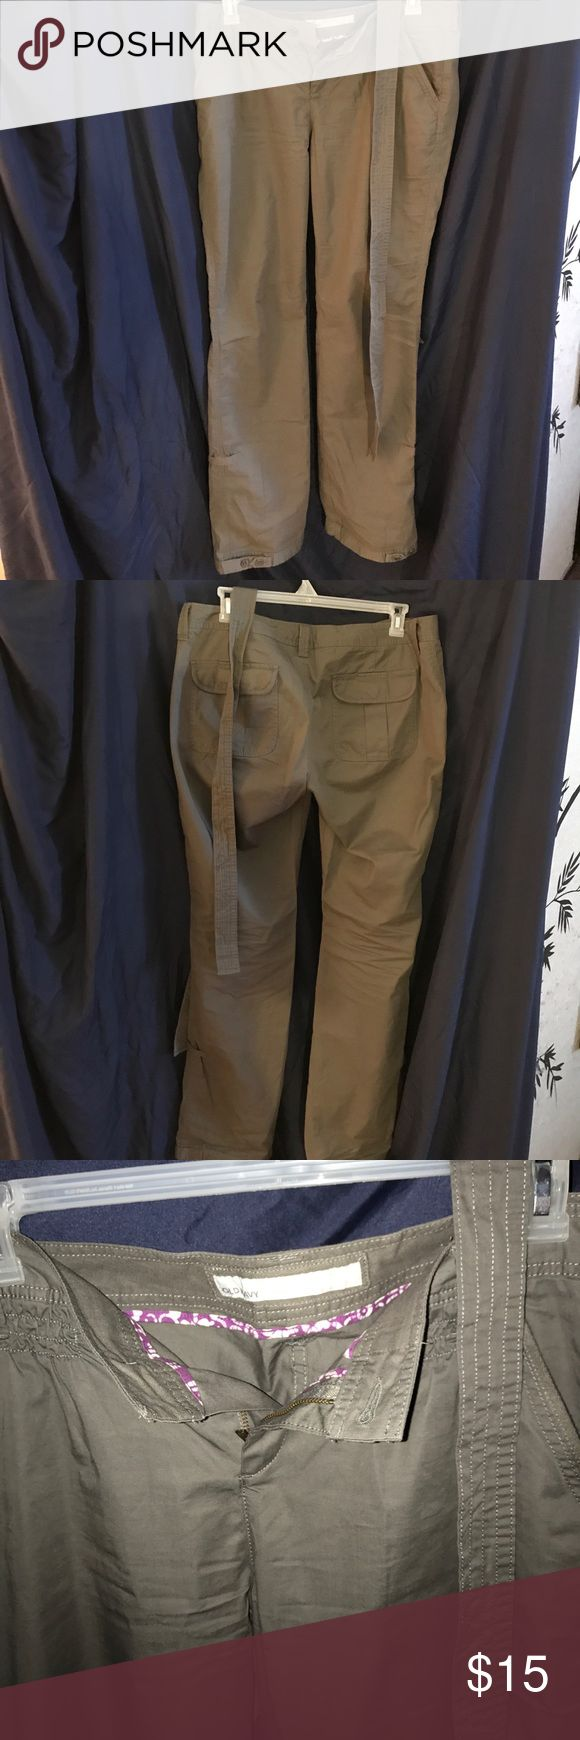 Cargo pants Gray cargo pants with a sash styled belt Old Navy Pants